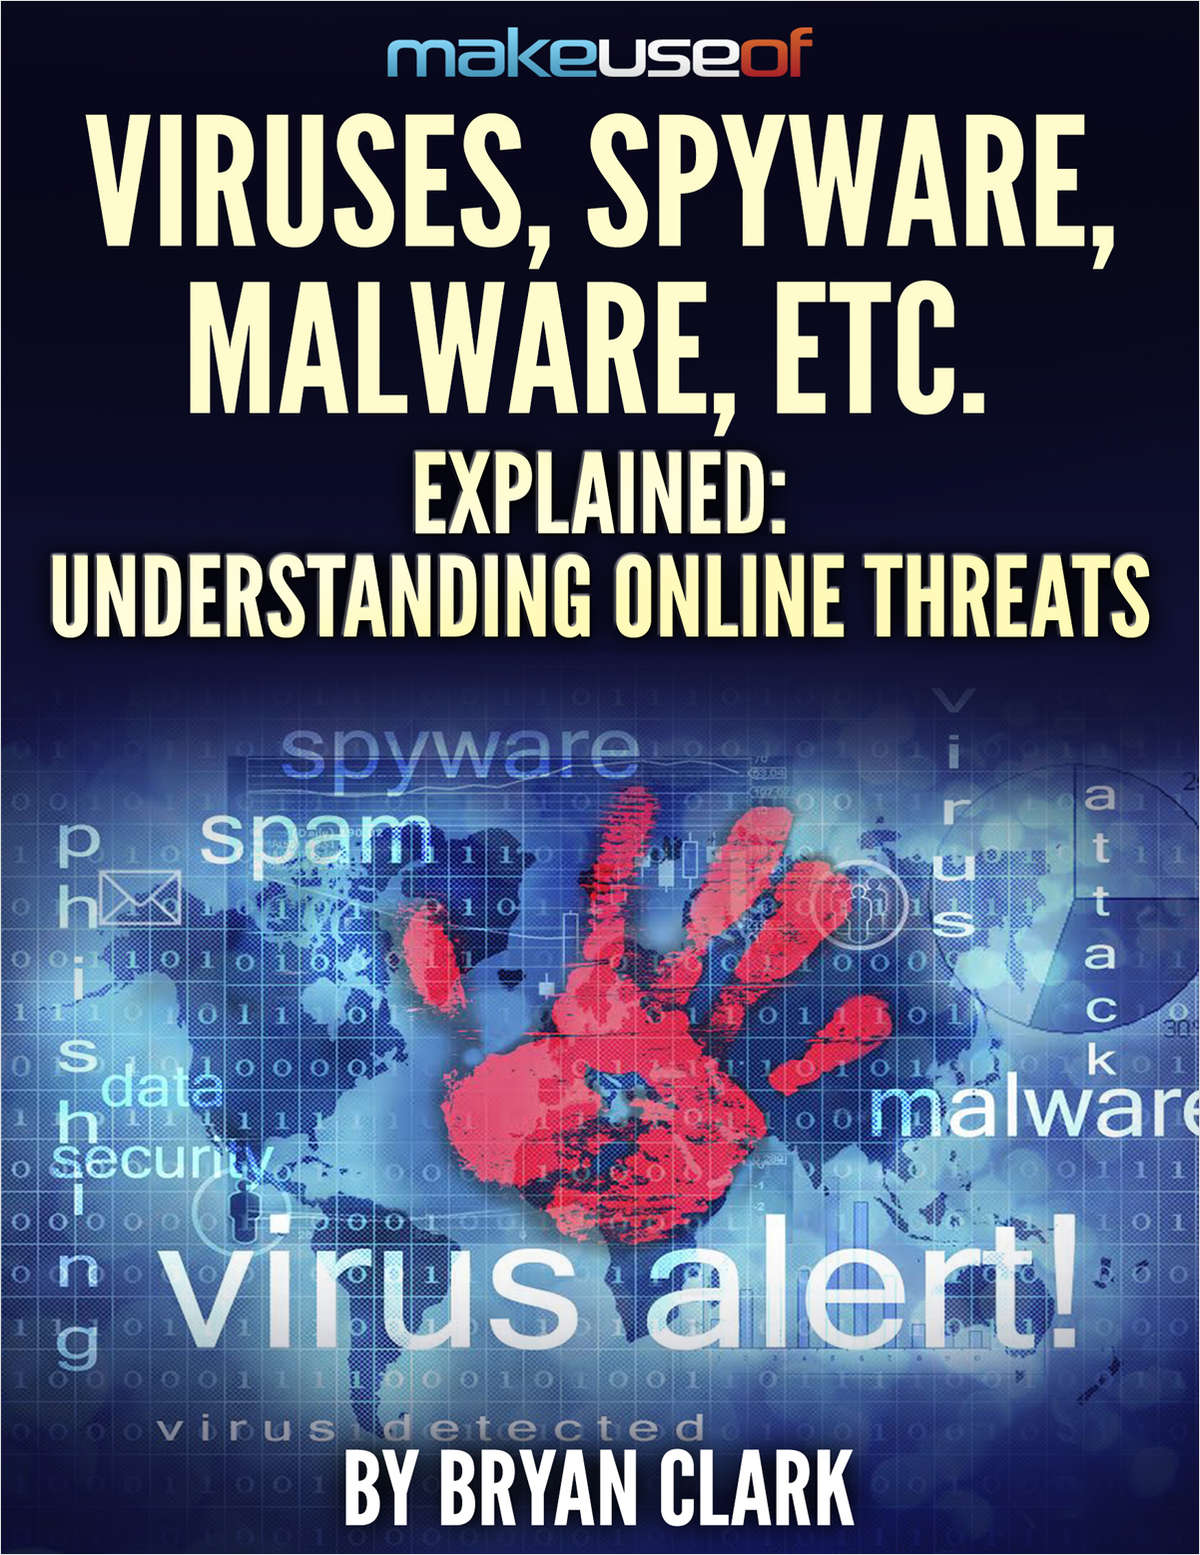 Viruses, Spyware, Malware, etc. Explained: Understanding Online Threats